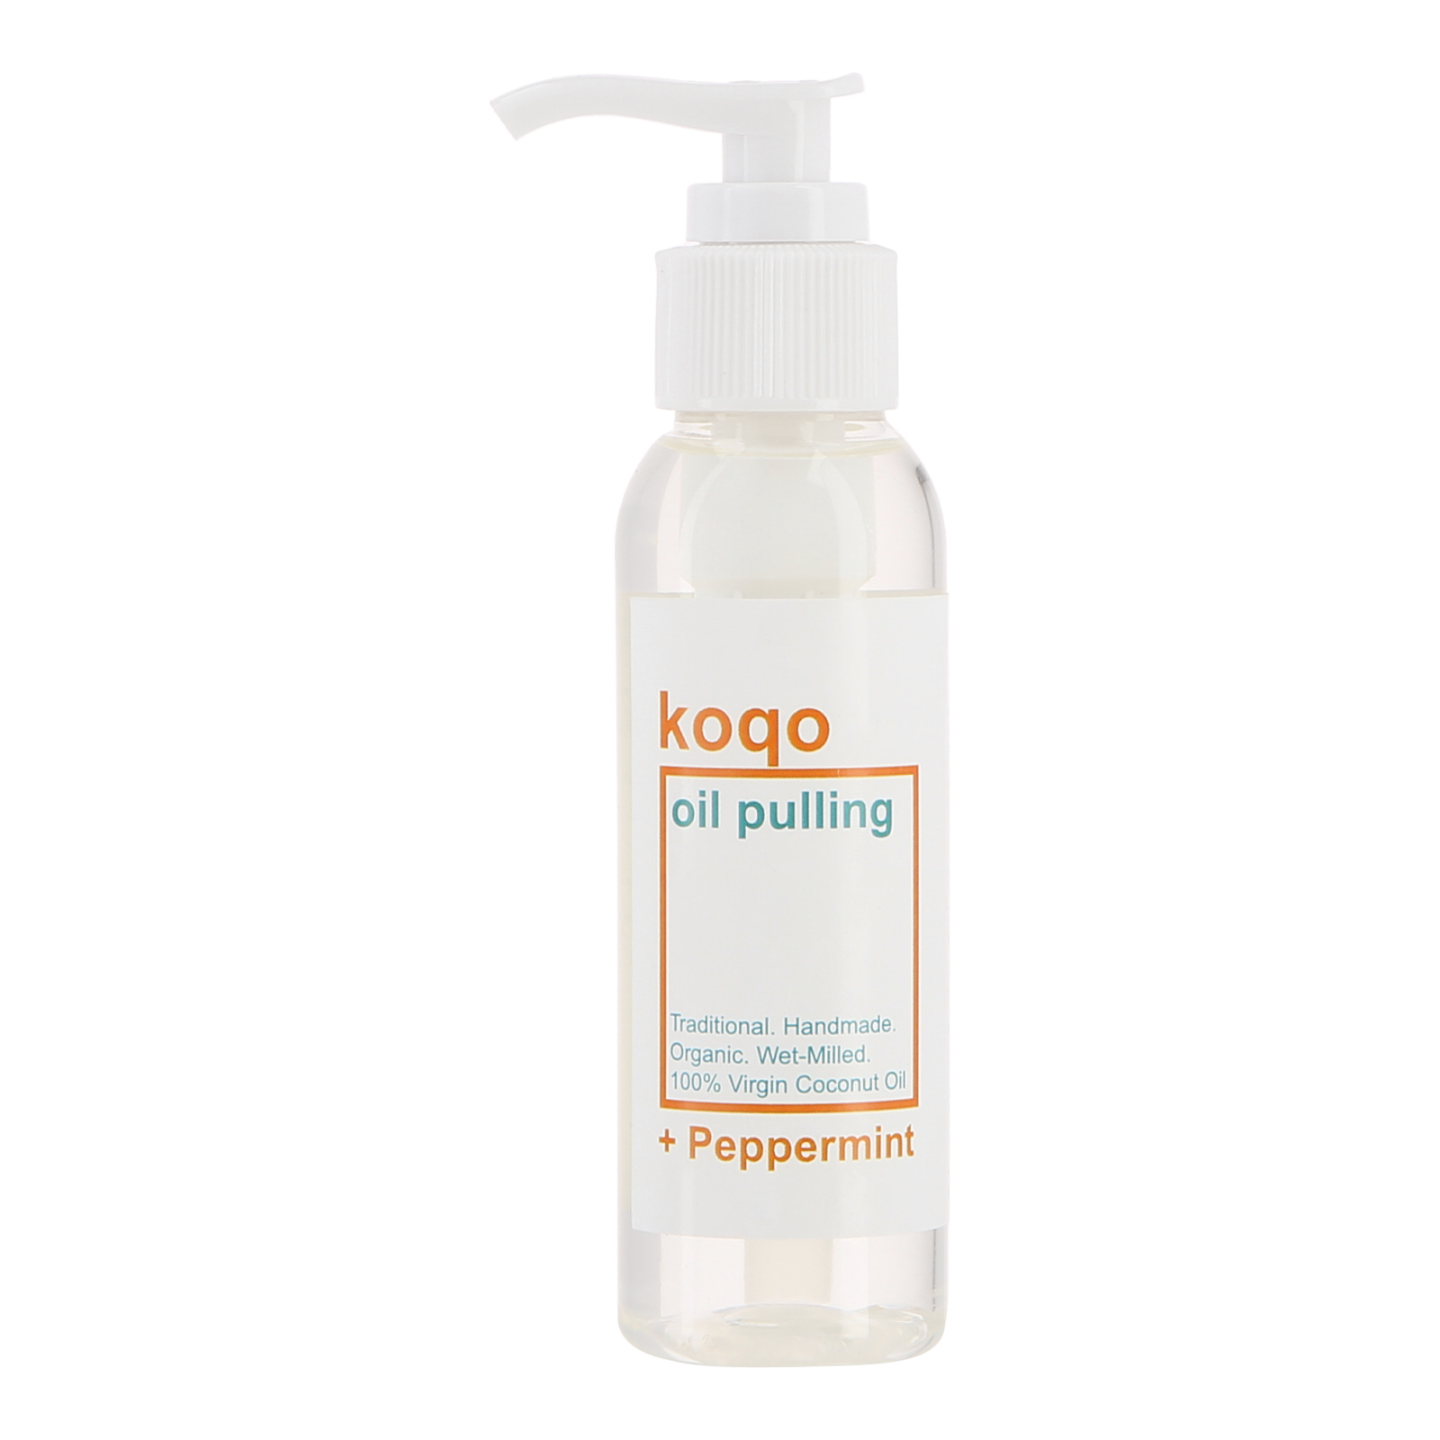 koqo Natural Mouthwash - Peppermint OIL PULLING (100ml pump)